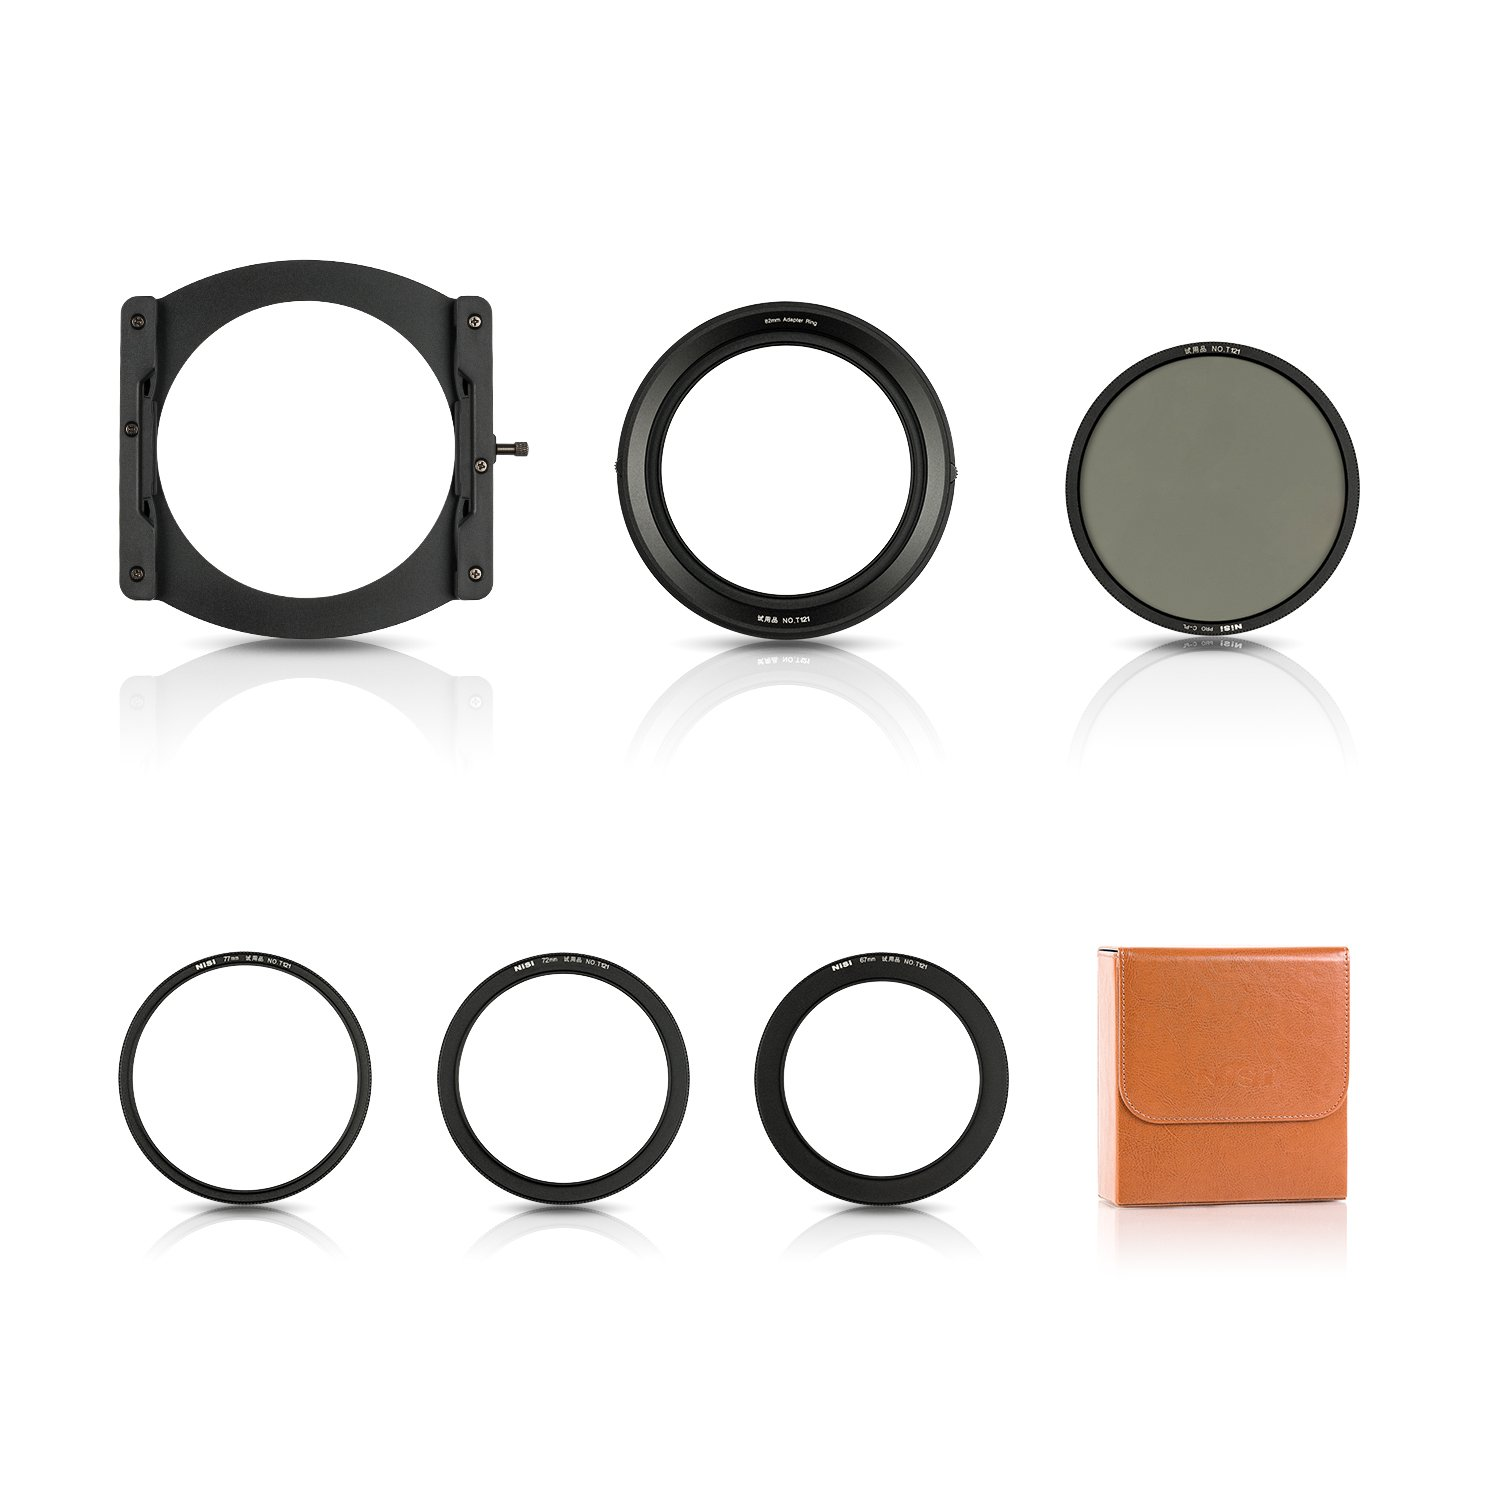 NiSi 100mm System V5 Pro Filter Holder Kit with Pro-CPL(86mm CPL),67mm.72mm.77mm Adapter Rings and Leather Filter Case